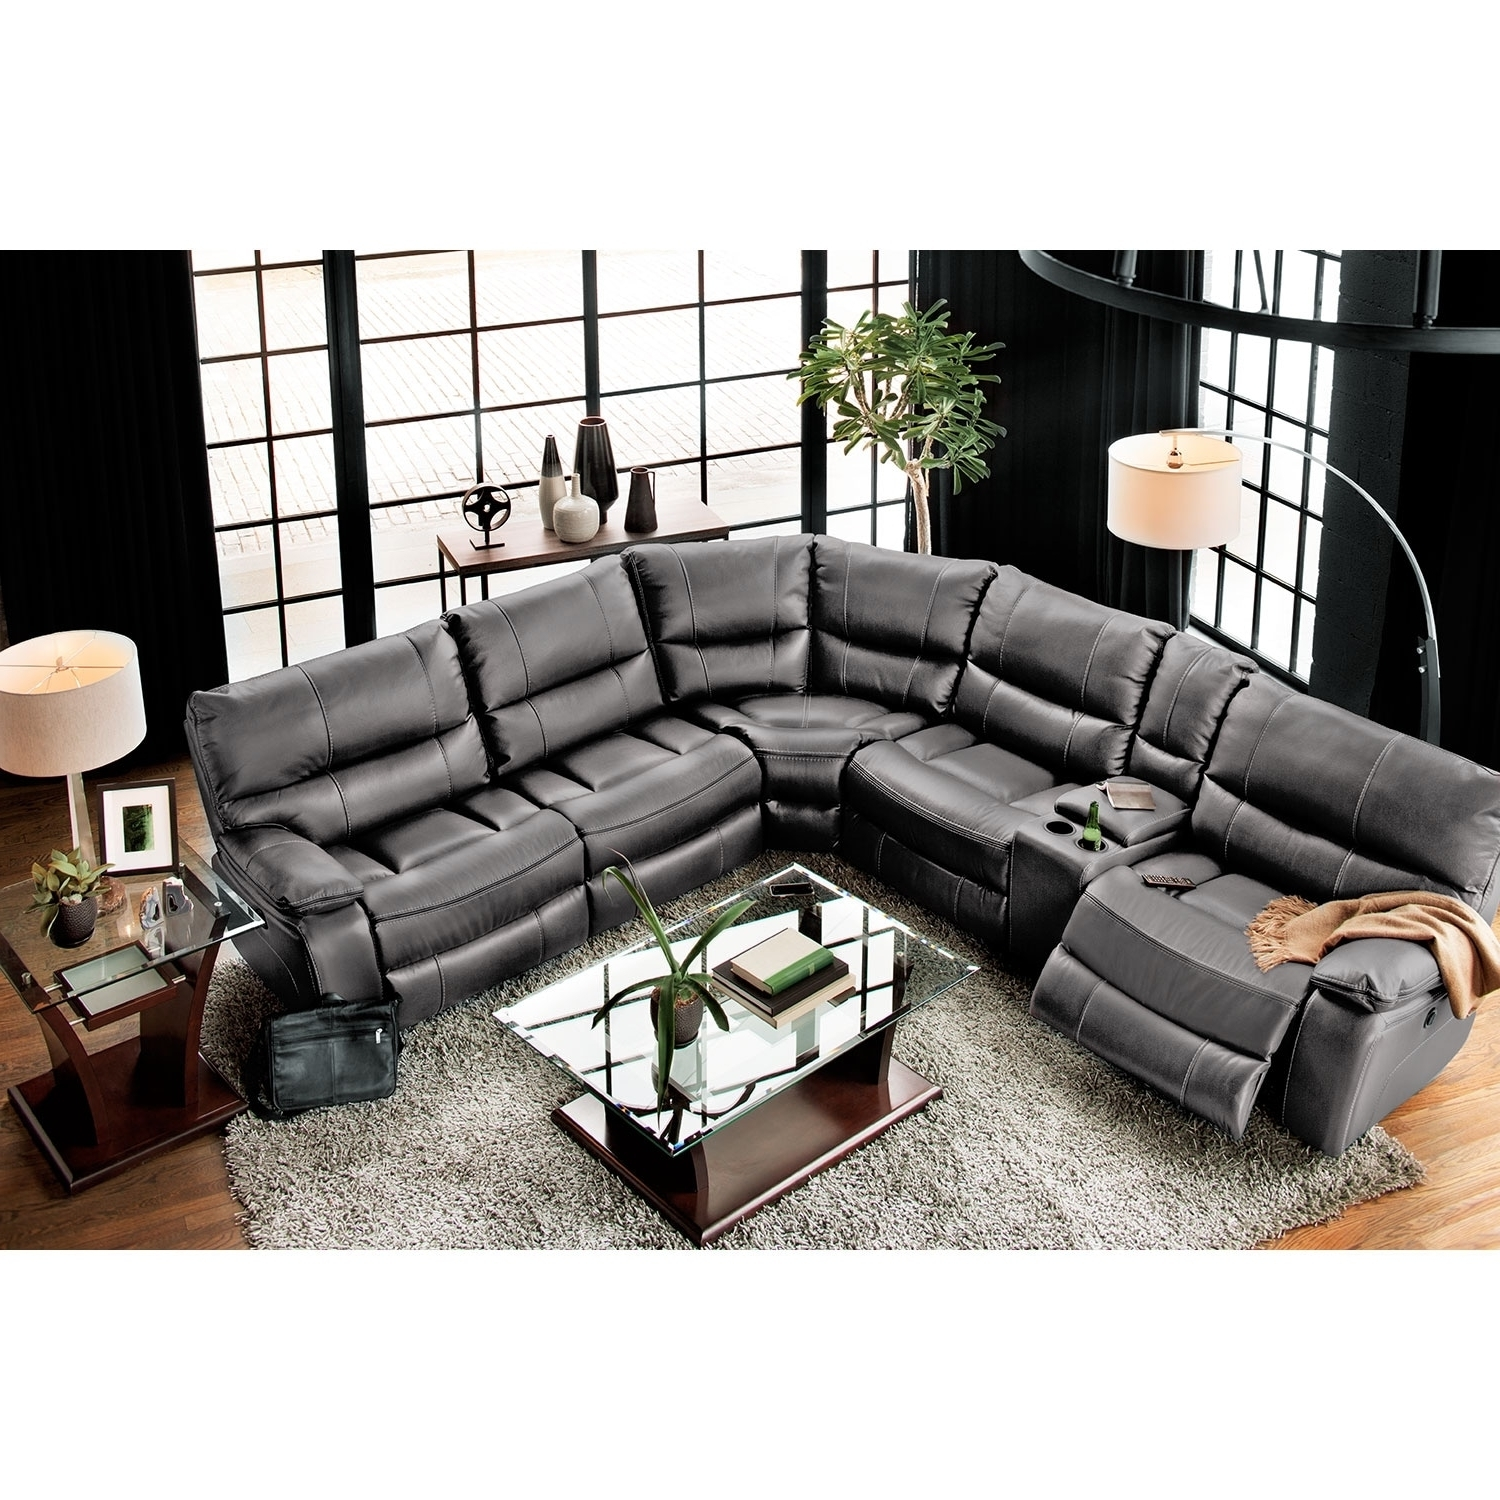 Orlando Sectional Sofas With Most Recently Released Orlando 6 Piece Power Reclining Sectional With 1 Stationary Chair (View 3 of 15)